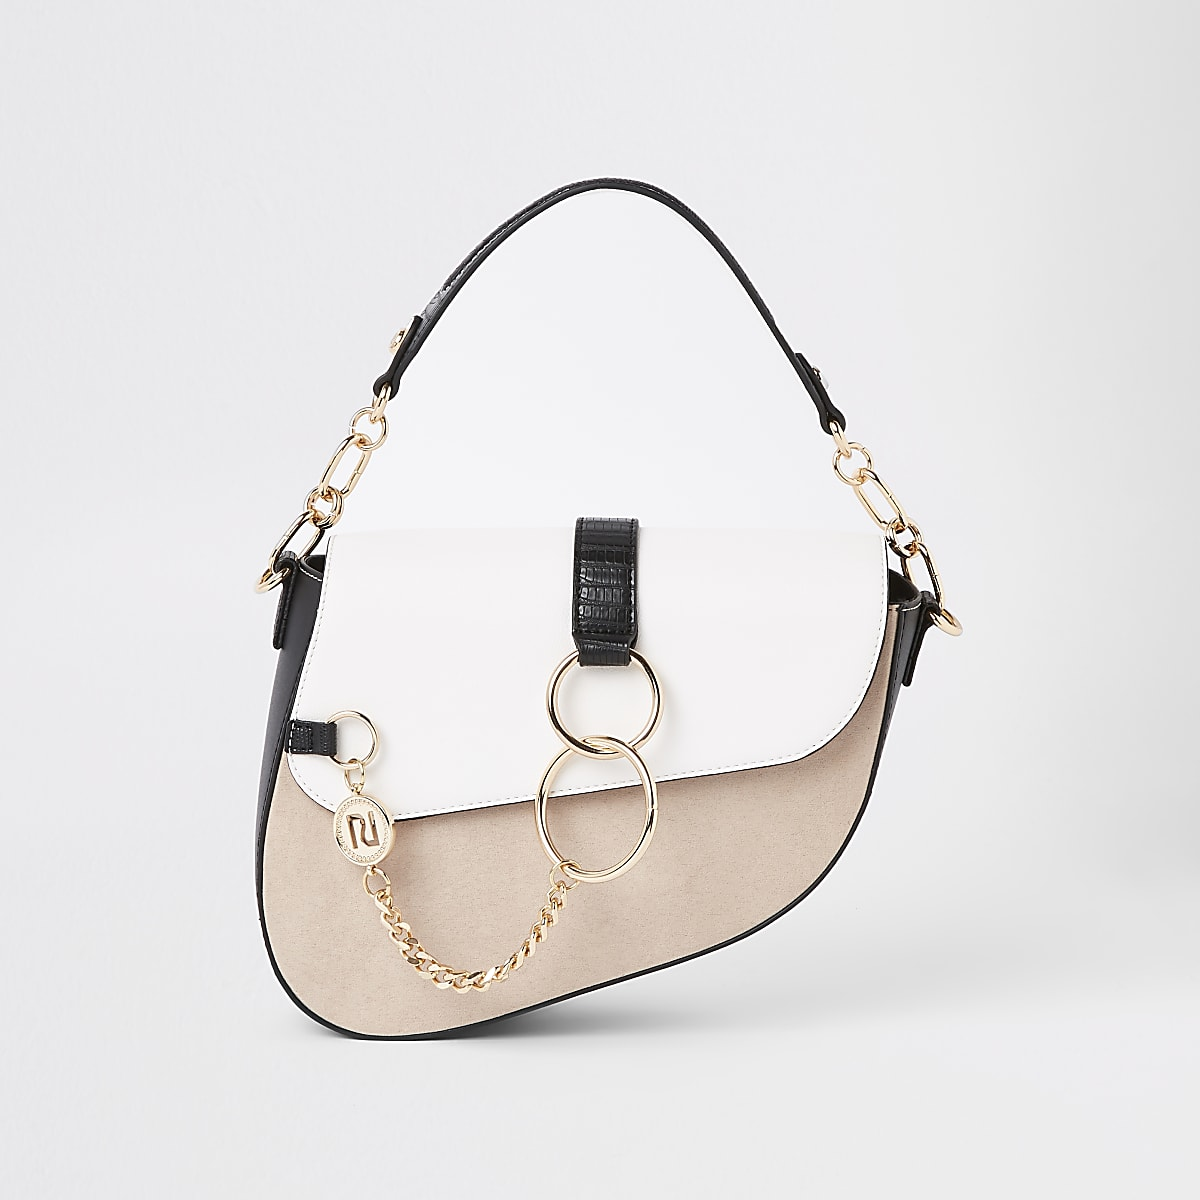 Light beige underarm saddle bag